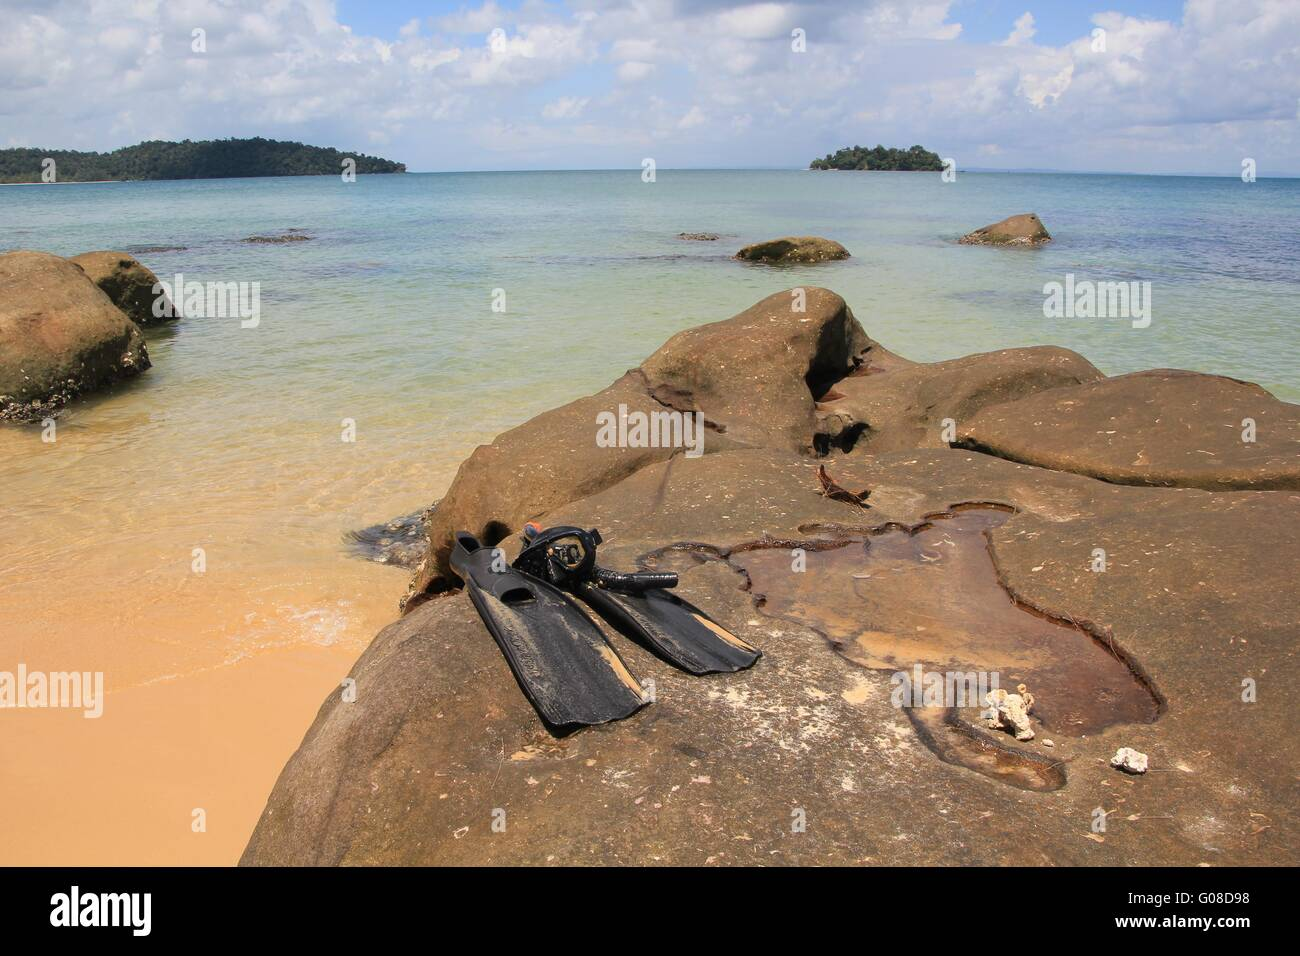 Fins at the beach on Koh Rong/ Monkey Island - Stock Image